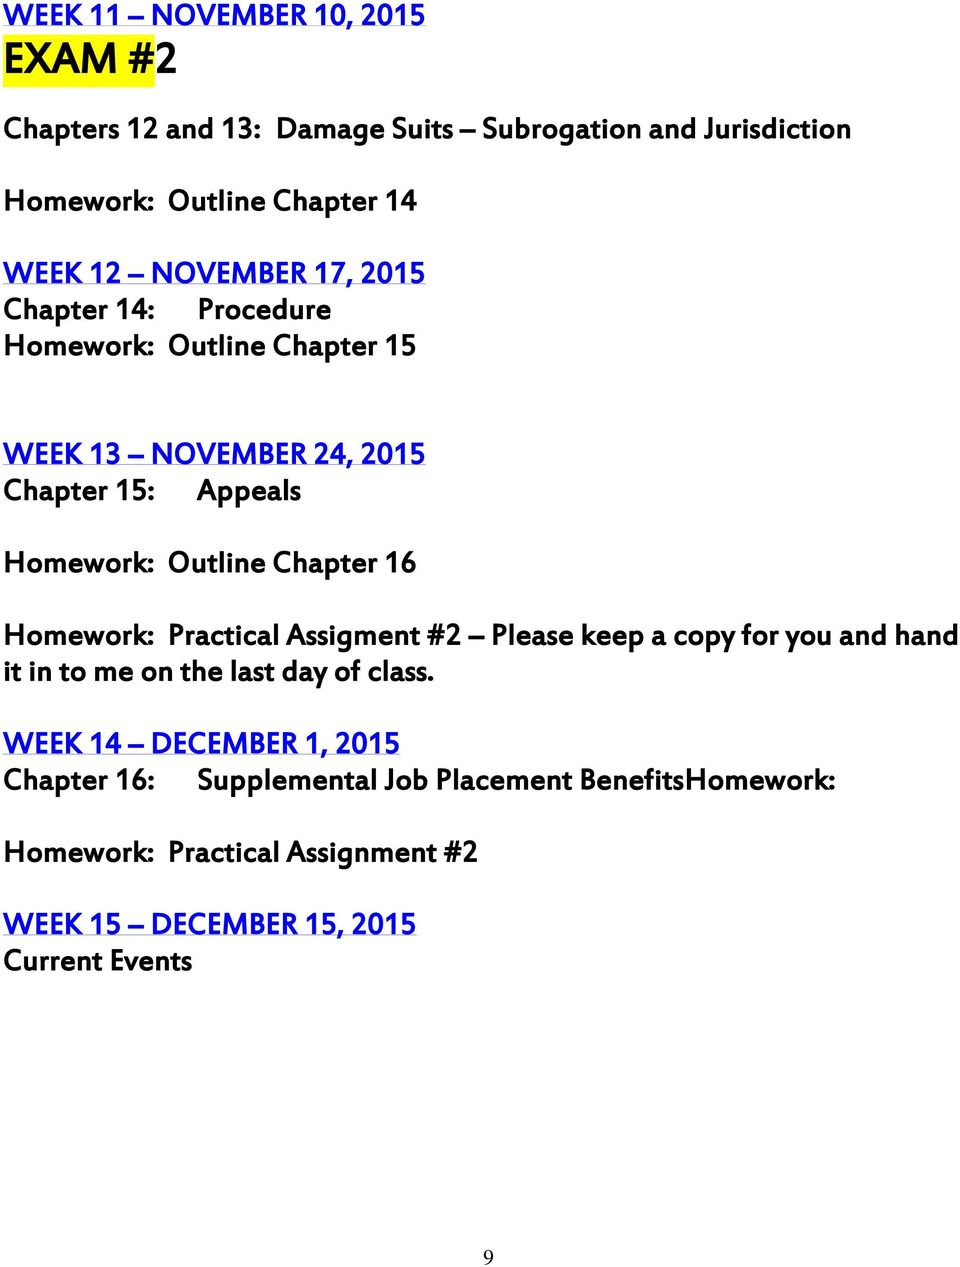 Chapter 16 Homework: Practical Assigment #2 Please keep a copy for you and hand it in to me on the last day of class.